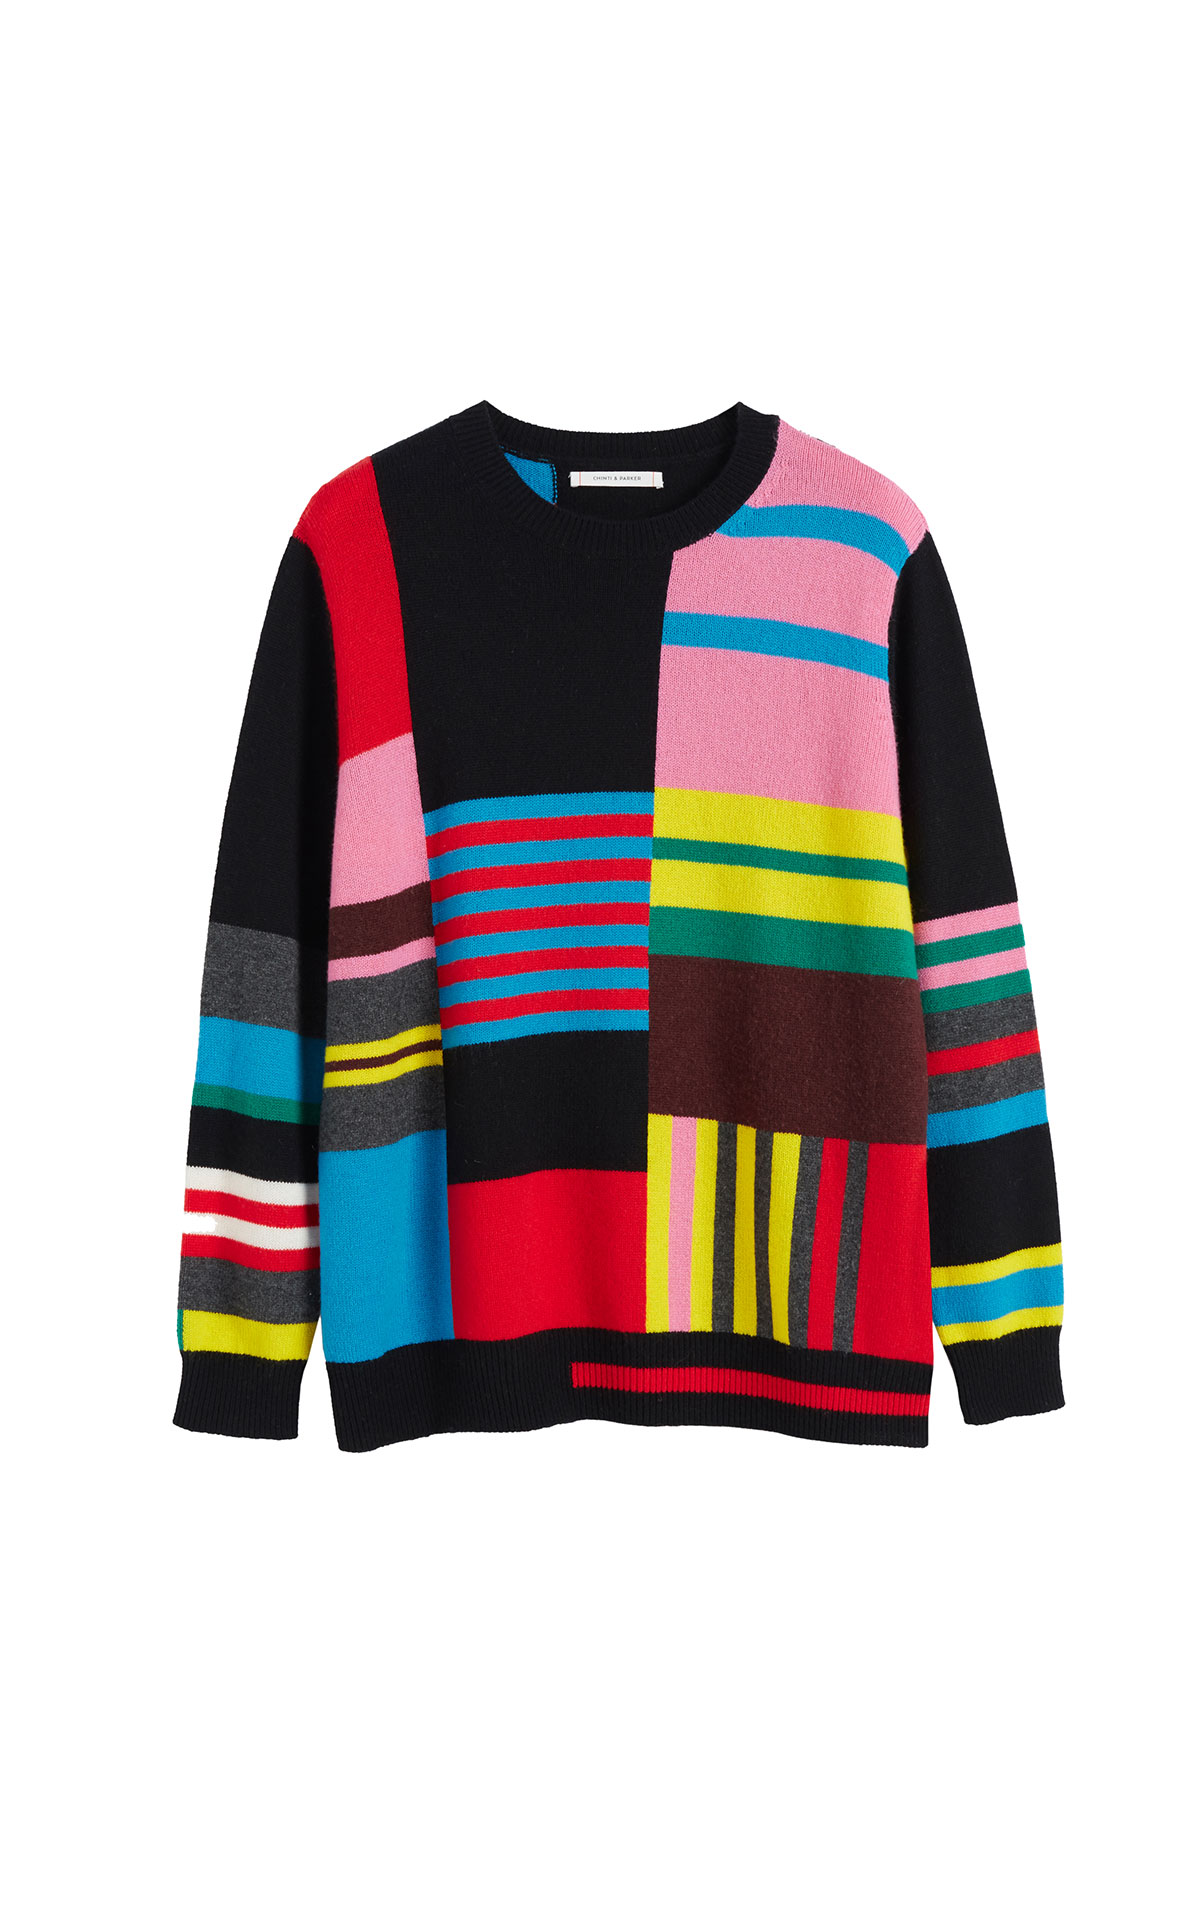 Chinti & Parker Eccentric sweater from Bicester Village